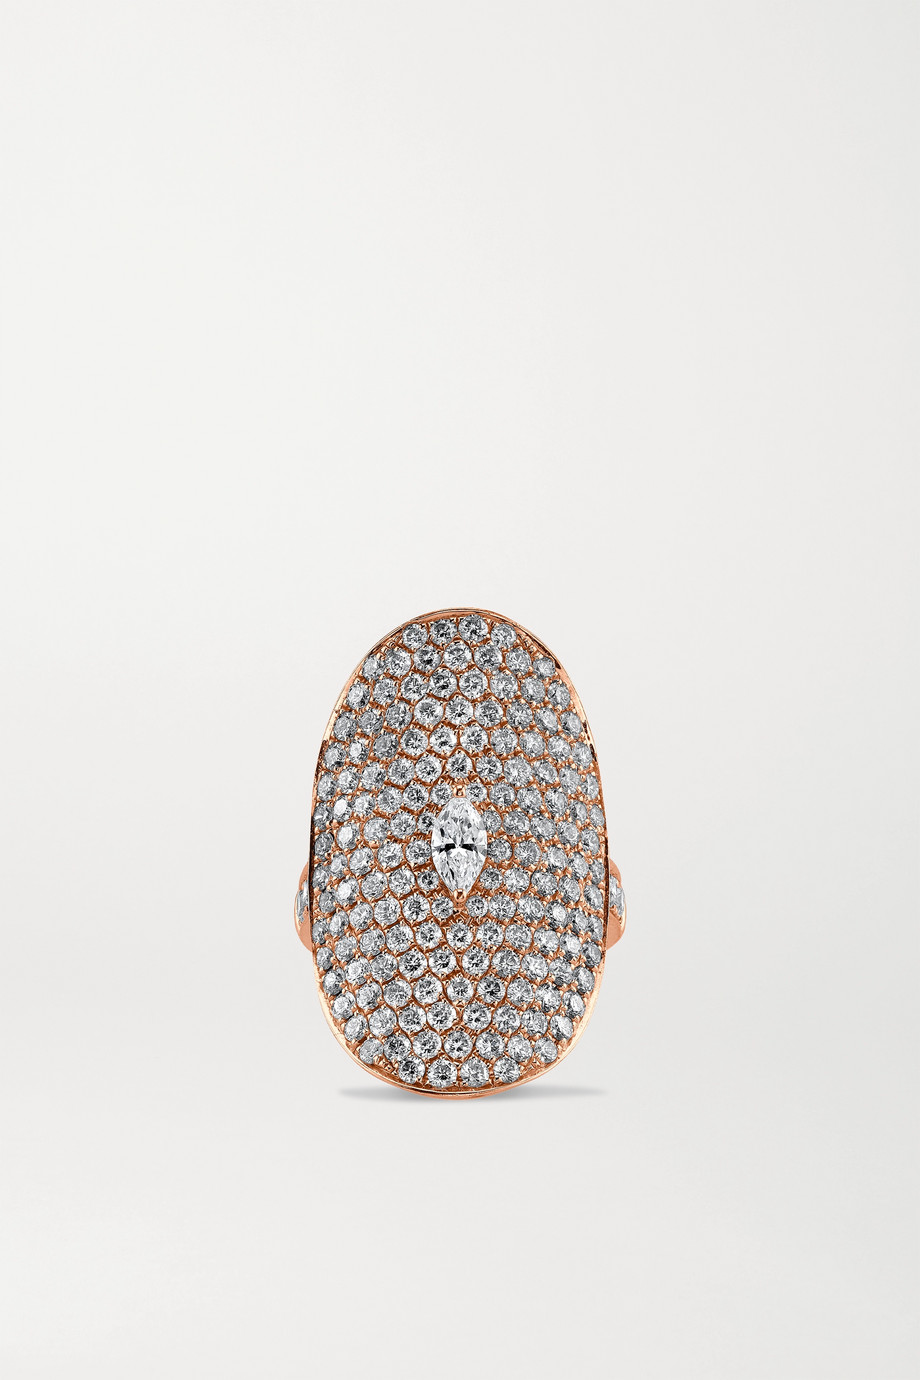 Anita Ko Bague en or rose 18 carats et diamants